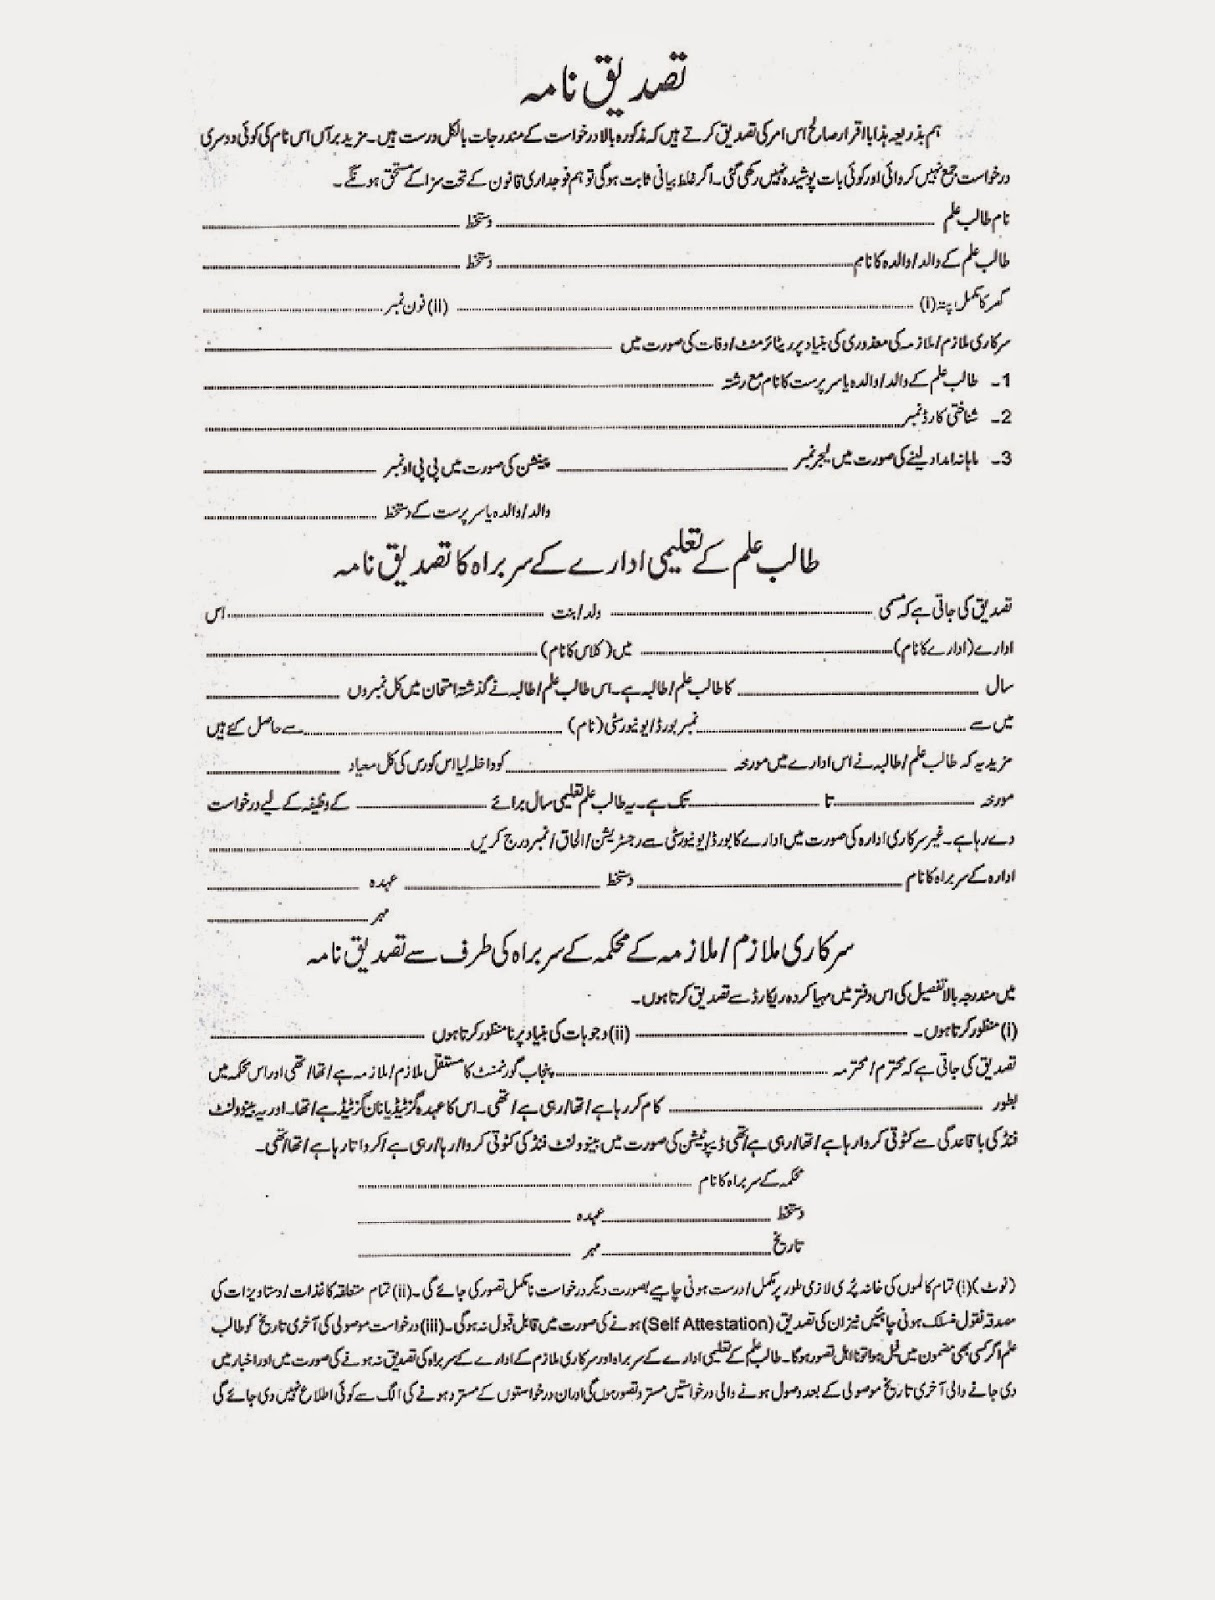 FORM OF SCHOLAR SHIP  FROM BENEVOLENT FUND (B.F) OF PUNJAB EMPLOYEES